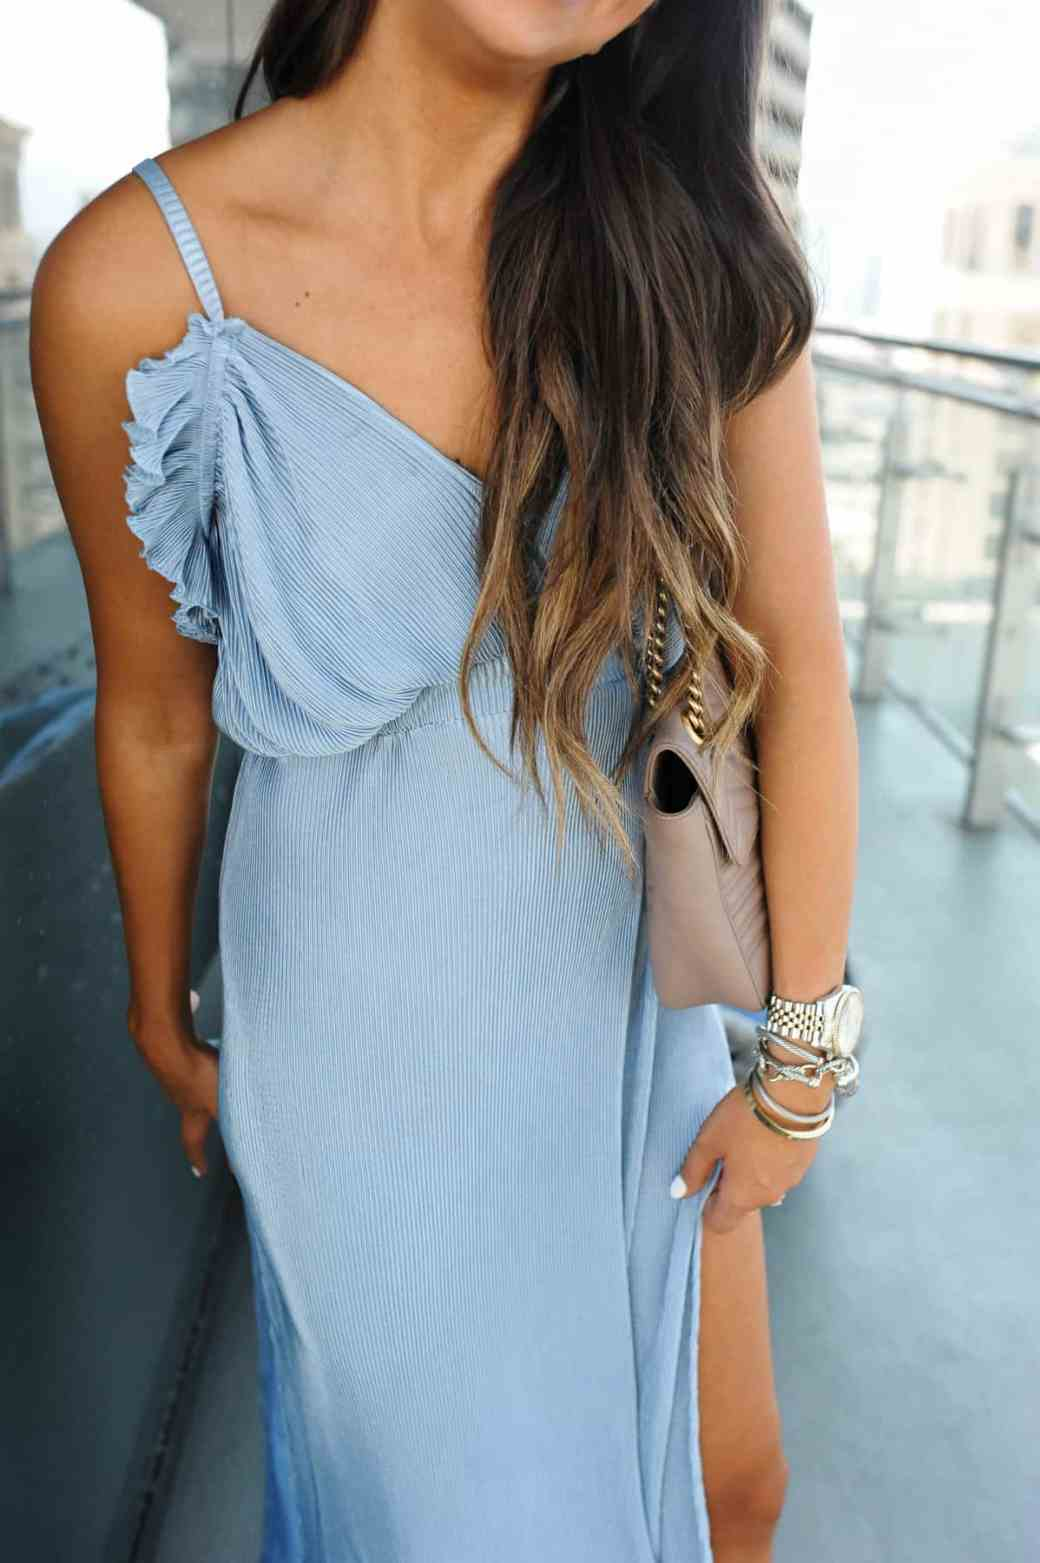 dress up buttercup 8 of 8 - Pleated Blue Maxi